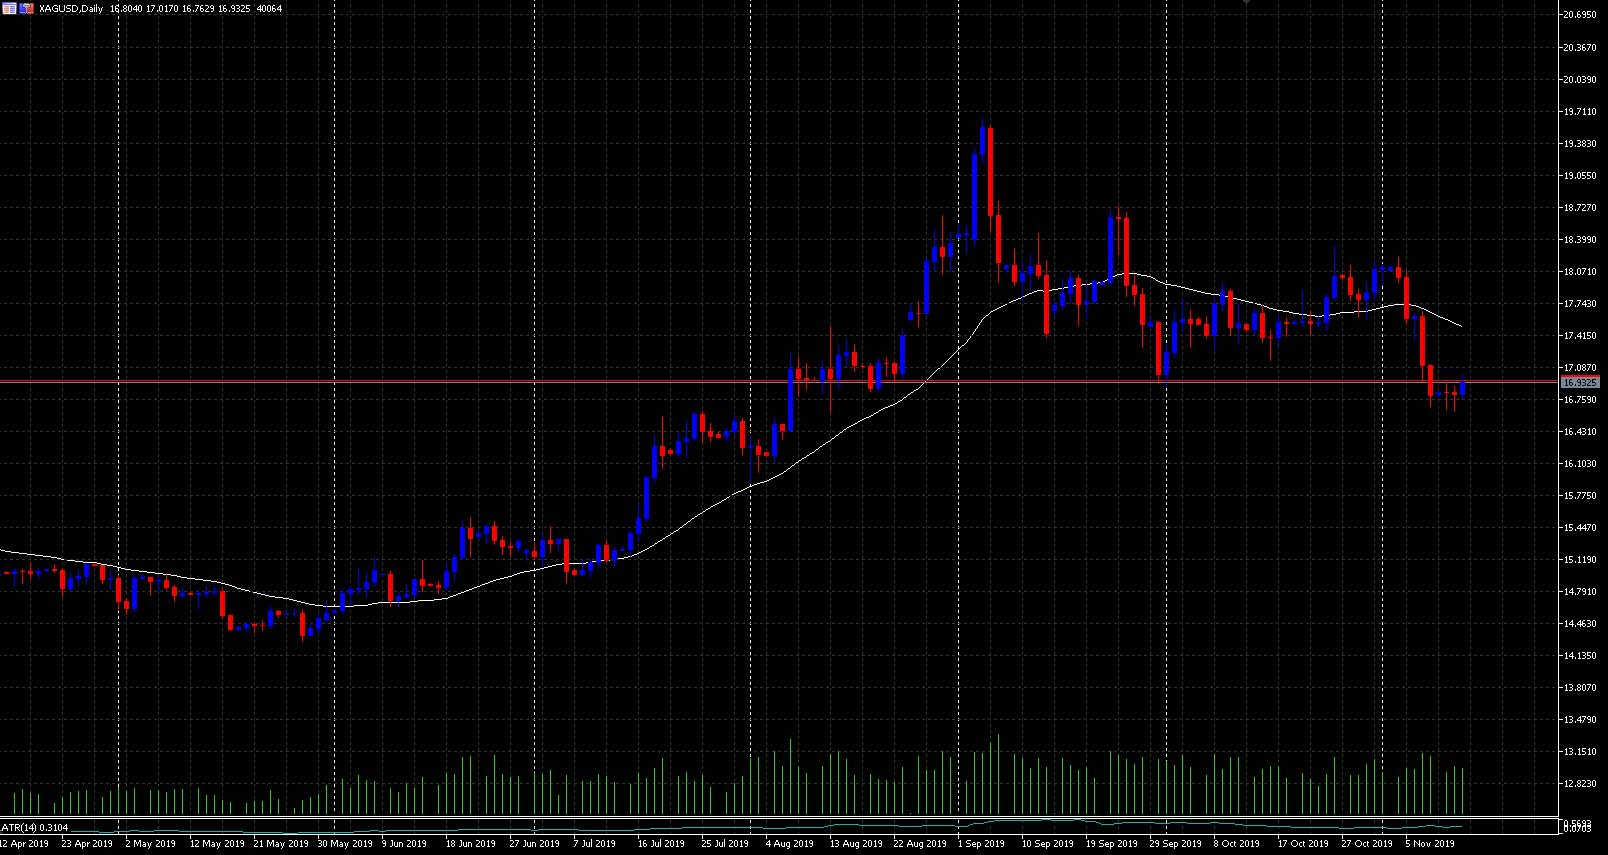 Basics of economics. Silver day chart in trading software. Each candle represents 1 day